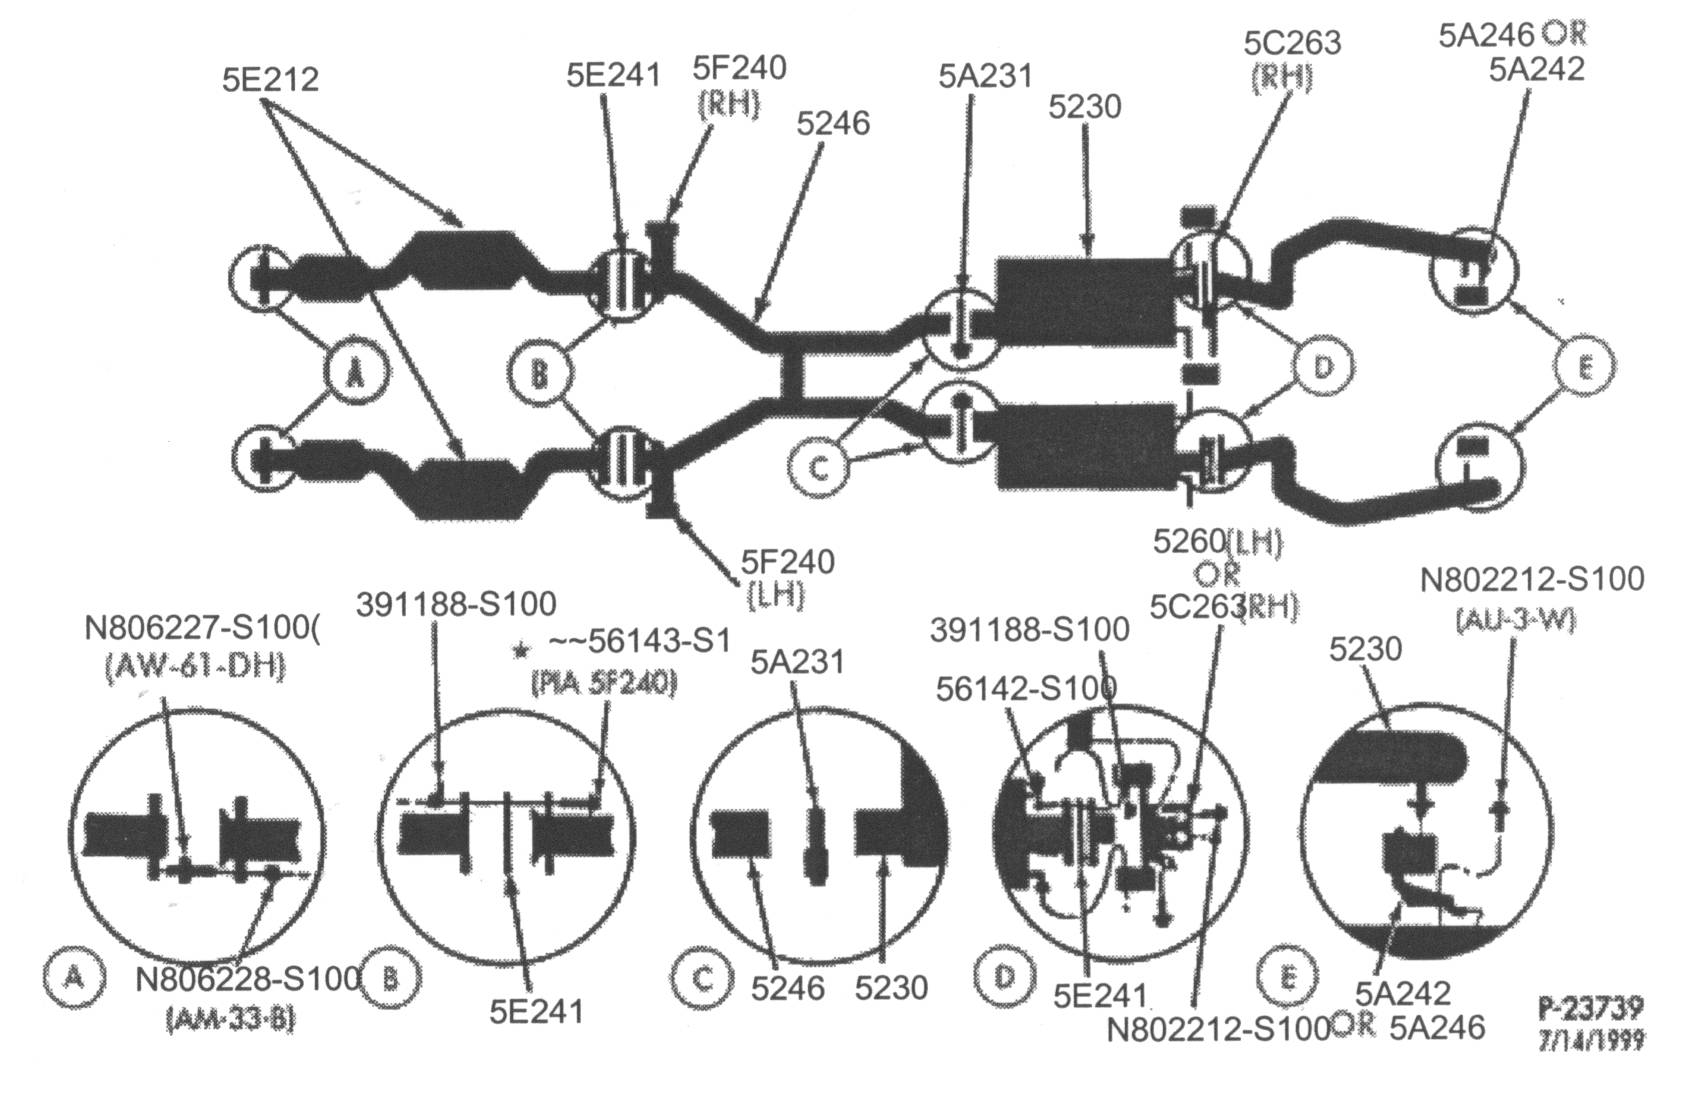 2003 ford explorer exhaust diagram data flow for employee management system 2002 auto parts catalog and